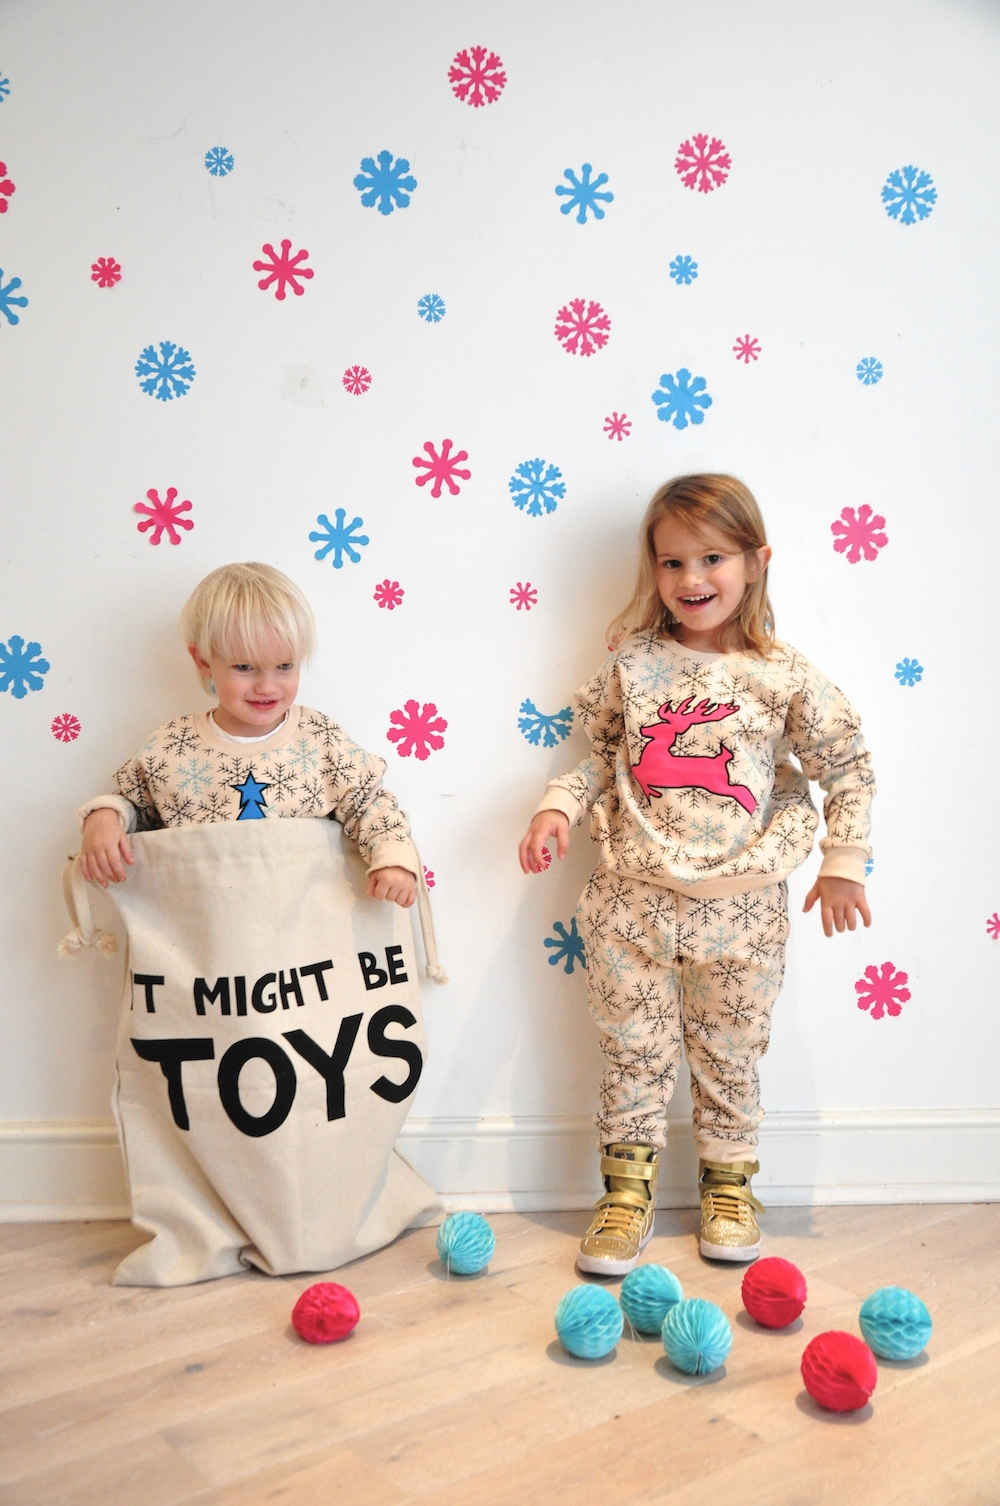 Gardner_and_the_gang_harrods_miniharrods_Christmas_tellkiddo_kidsen_19